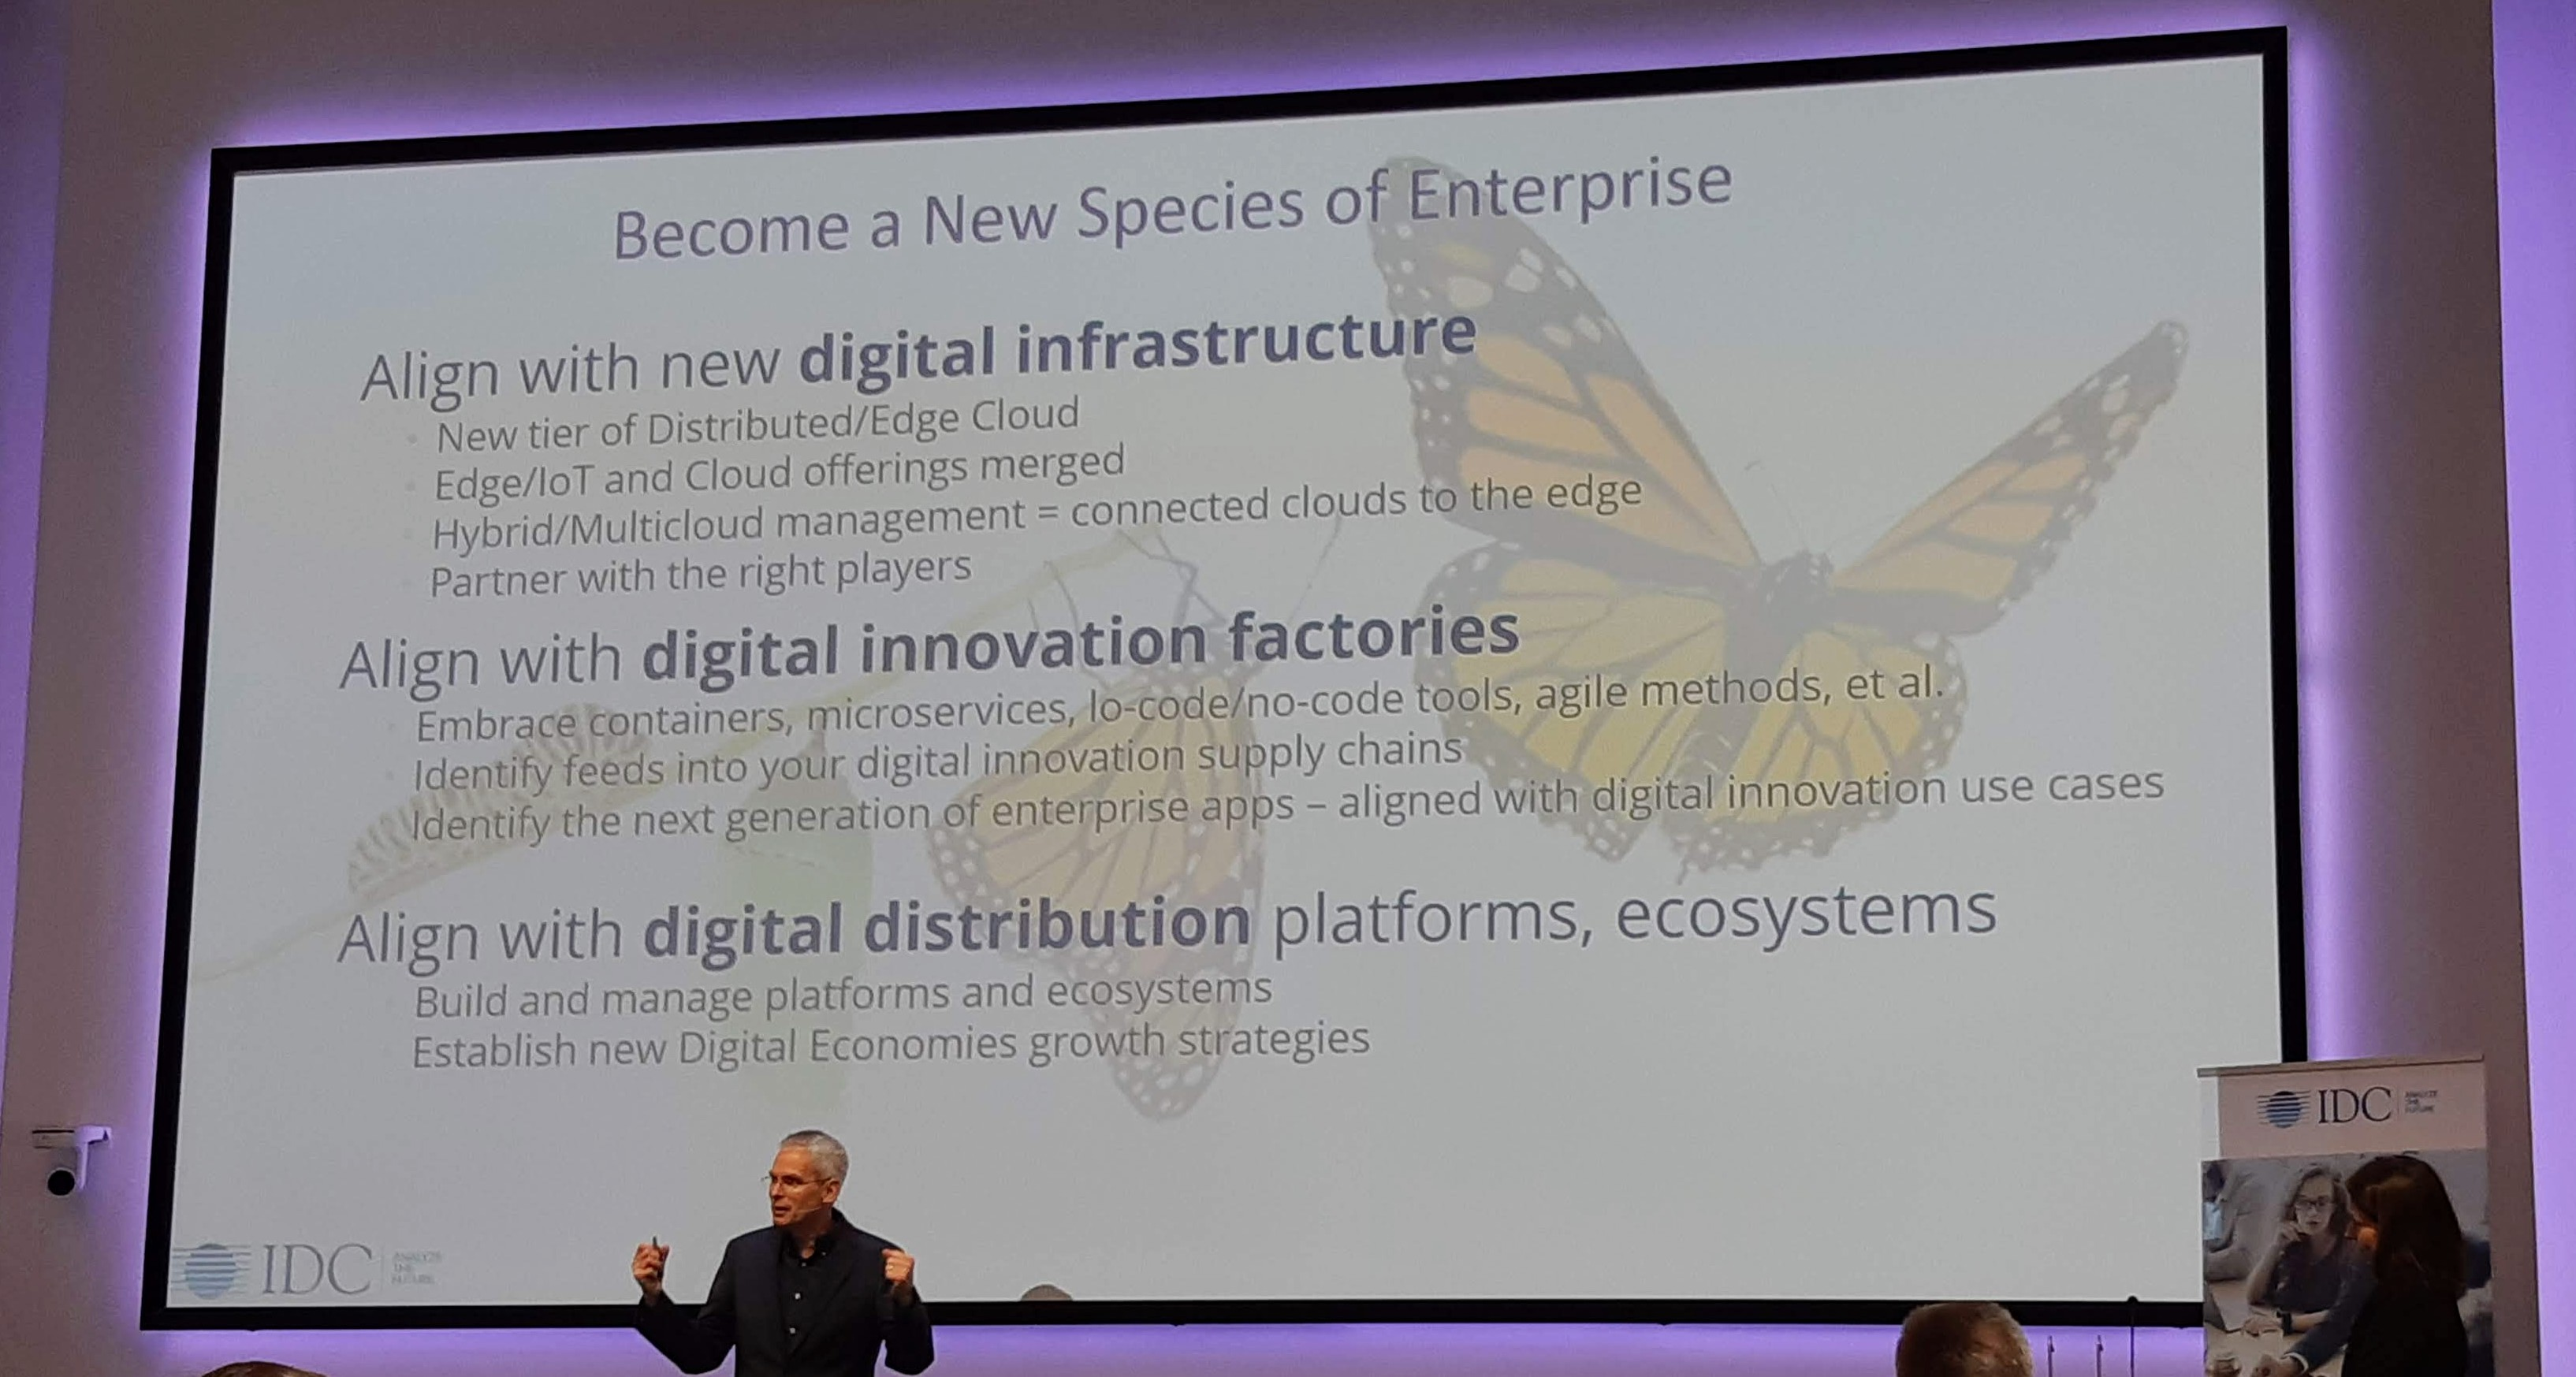 Digital first økonomi at IDC CxO Directions 2020